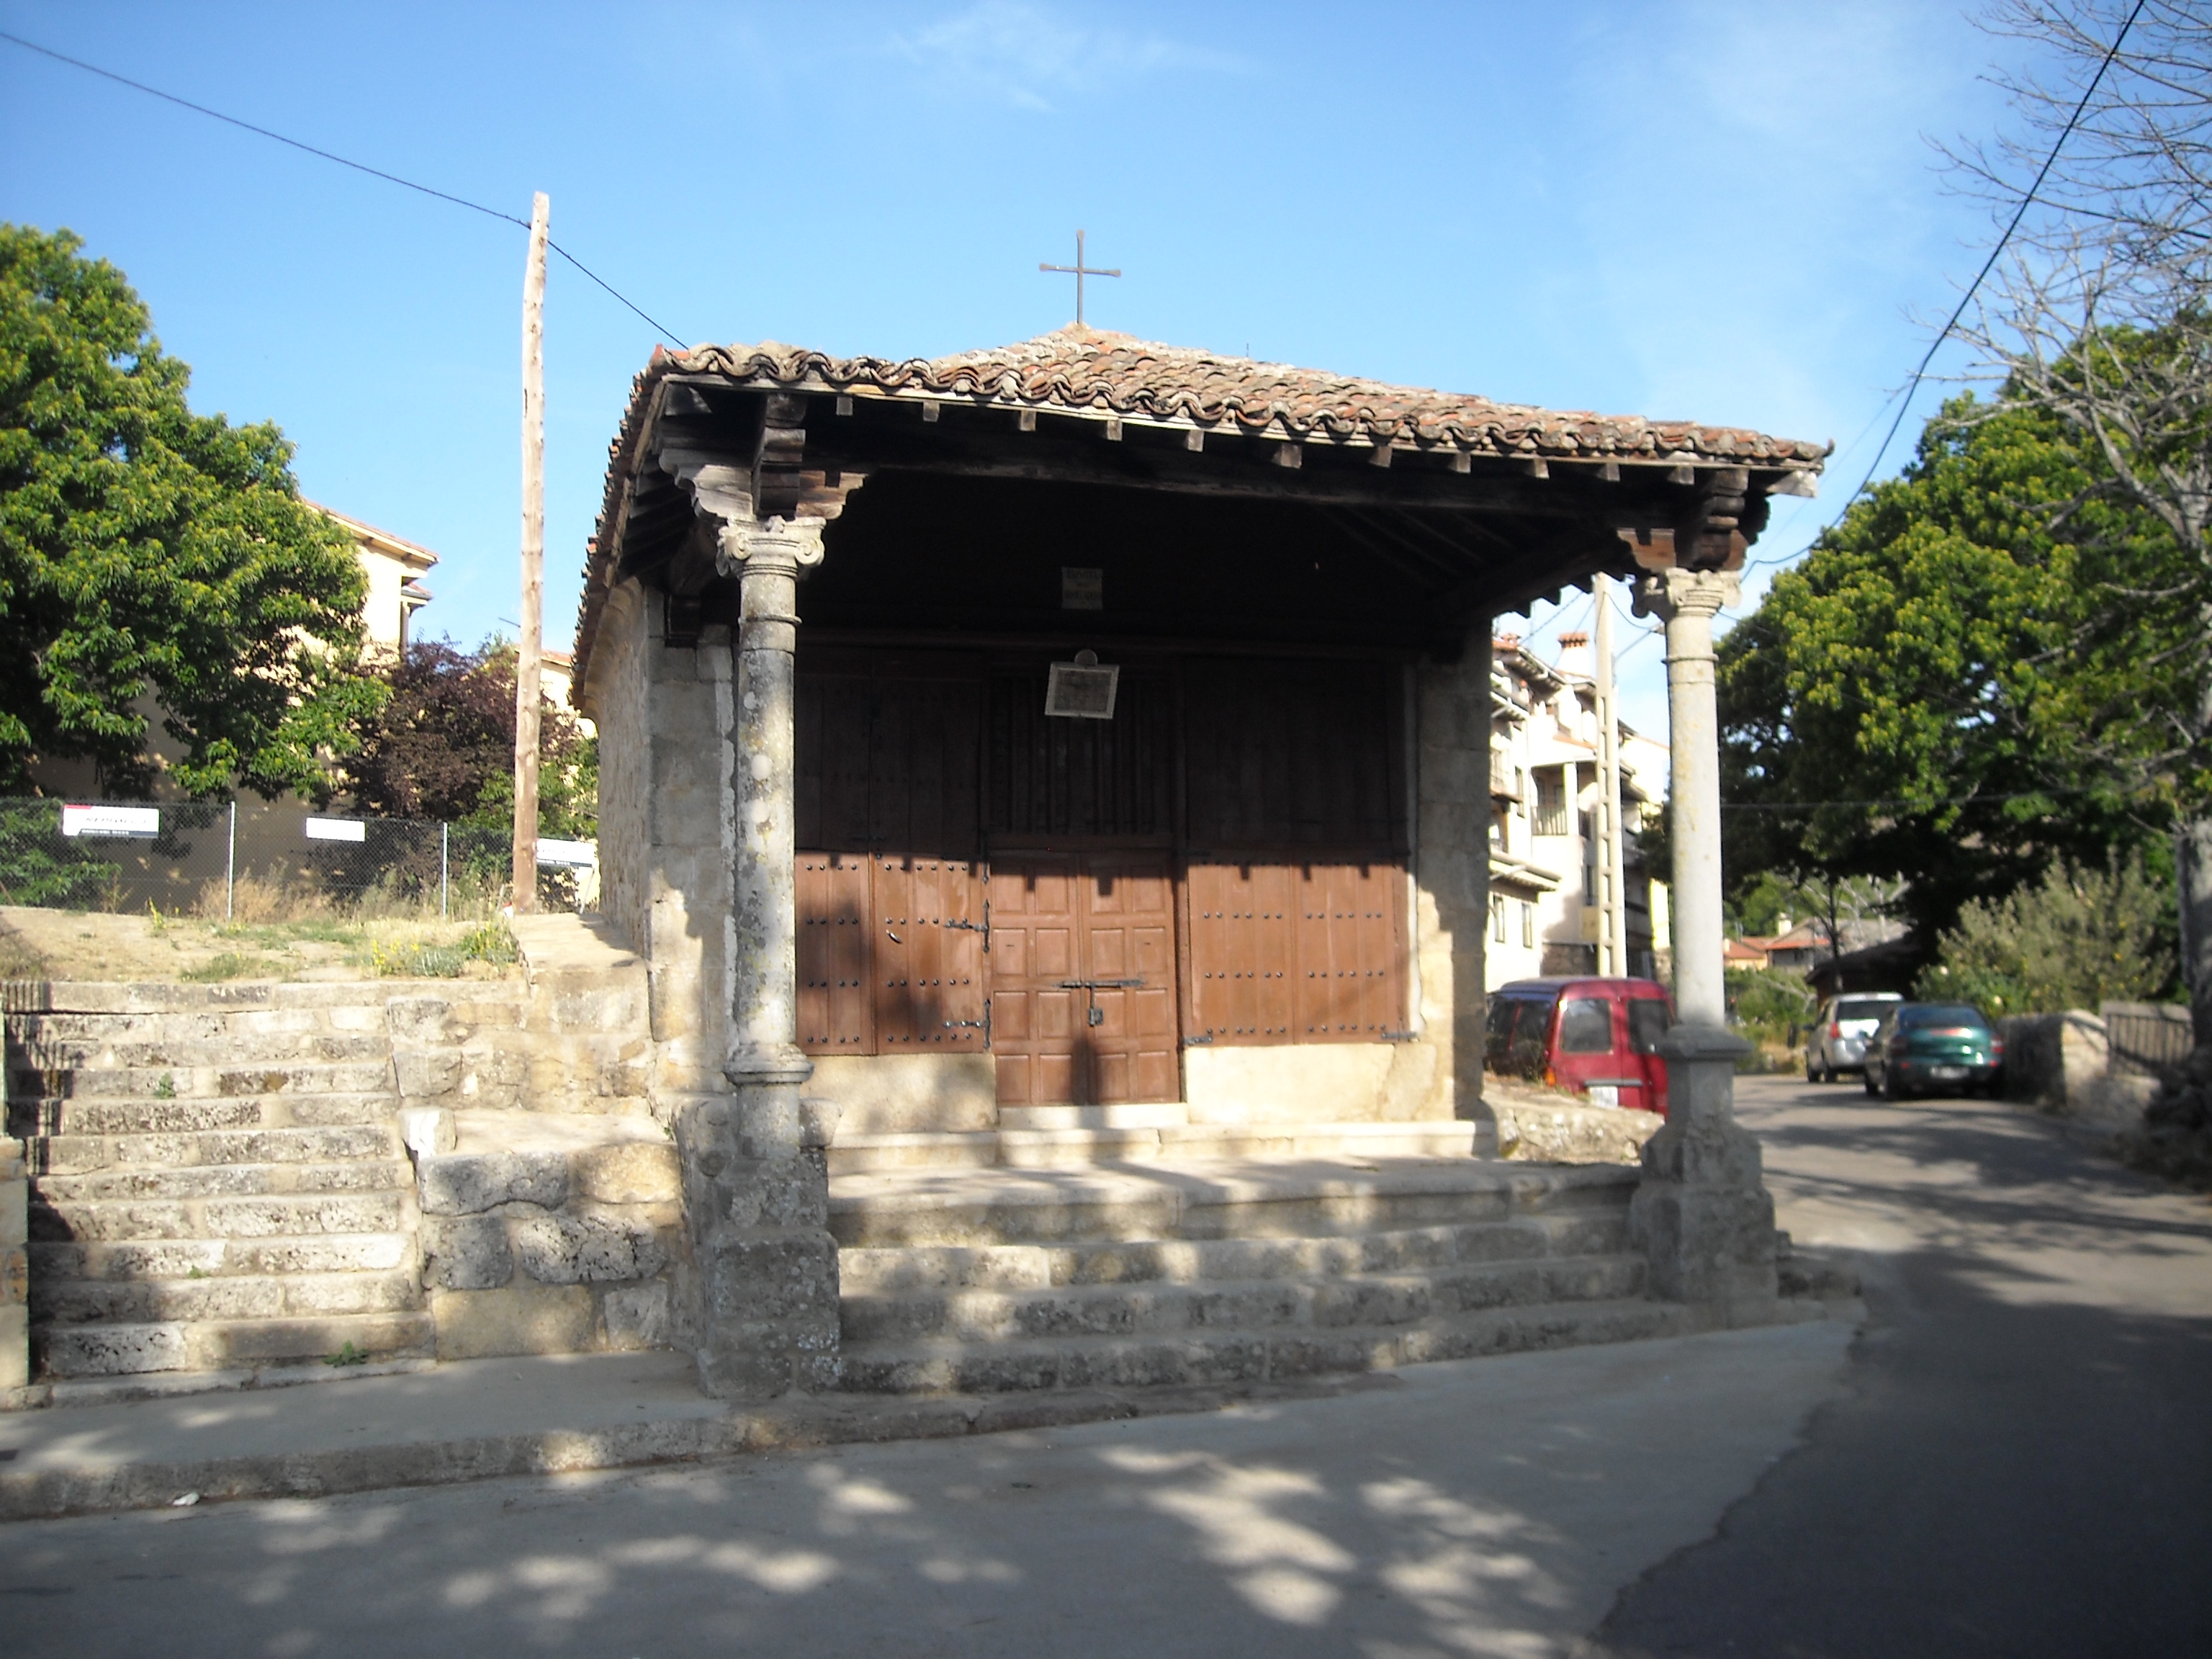 https://upload.wikimedia.org/wikipedia/commons/b/b2/Ermita_del_Humilladero%2C_La_Alberca.JPG